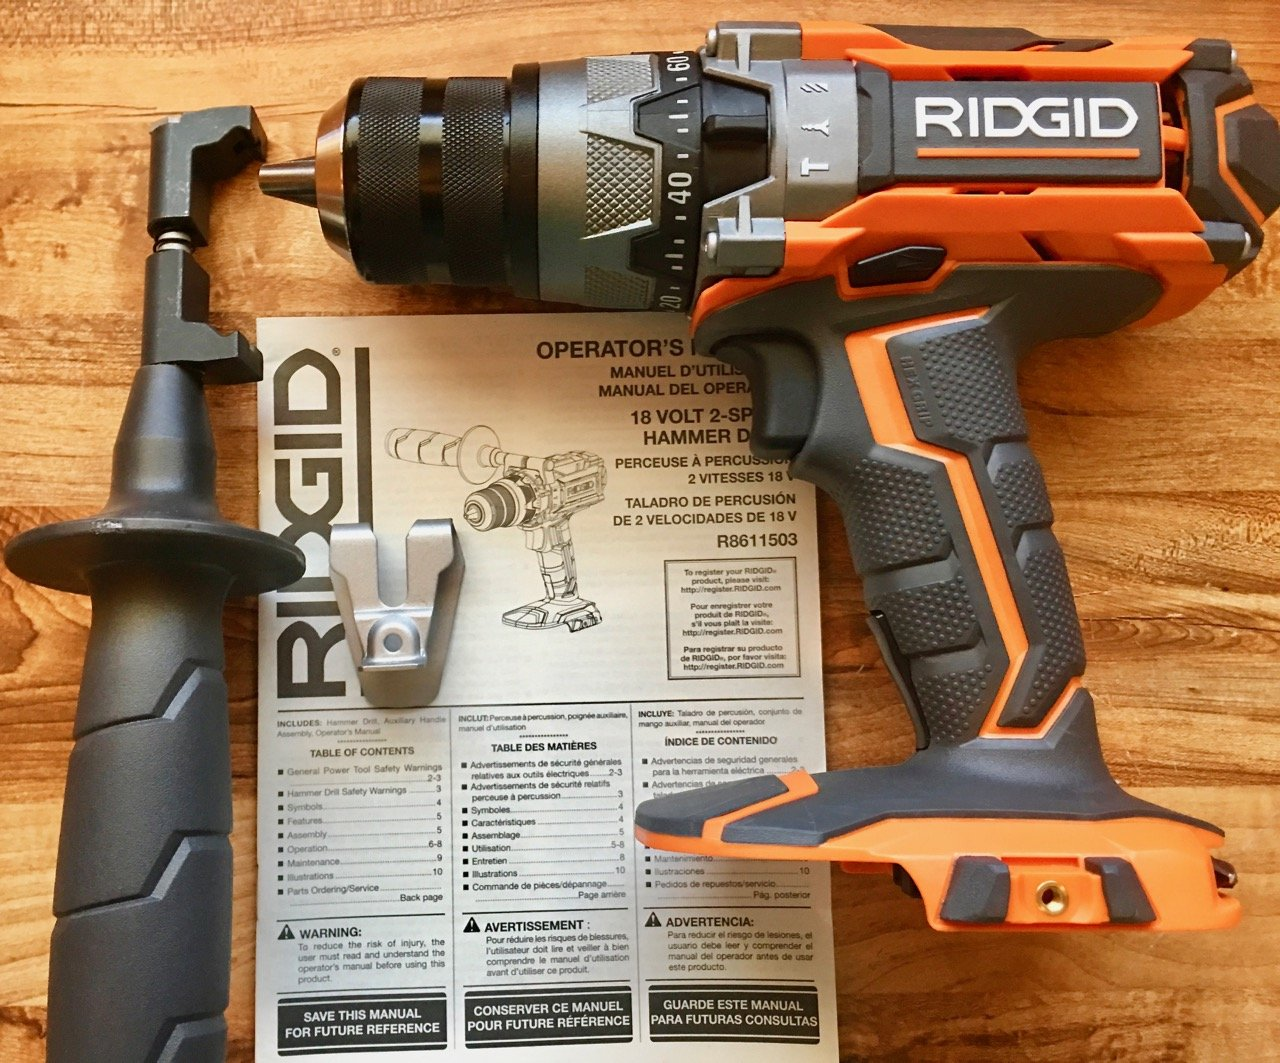 Ridgid R8611503 Gen5X 18V Lithium Ion Cordless 1/2 Inch 780 Inch Pound Hammer Drill with LED Lighting and Textured Handle (Battery Not Included, Tool Only) by Ridgid (Image #1)